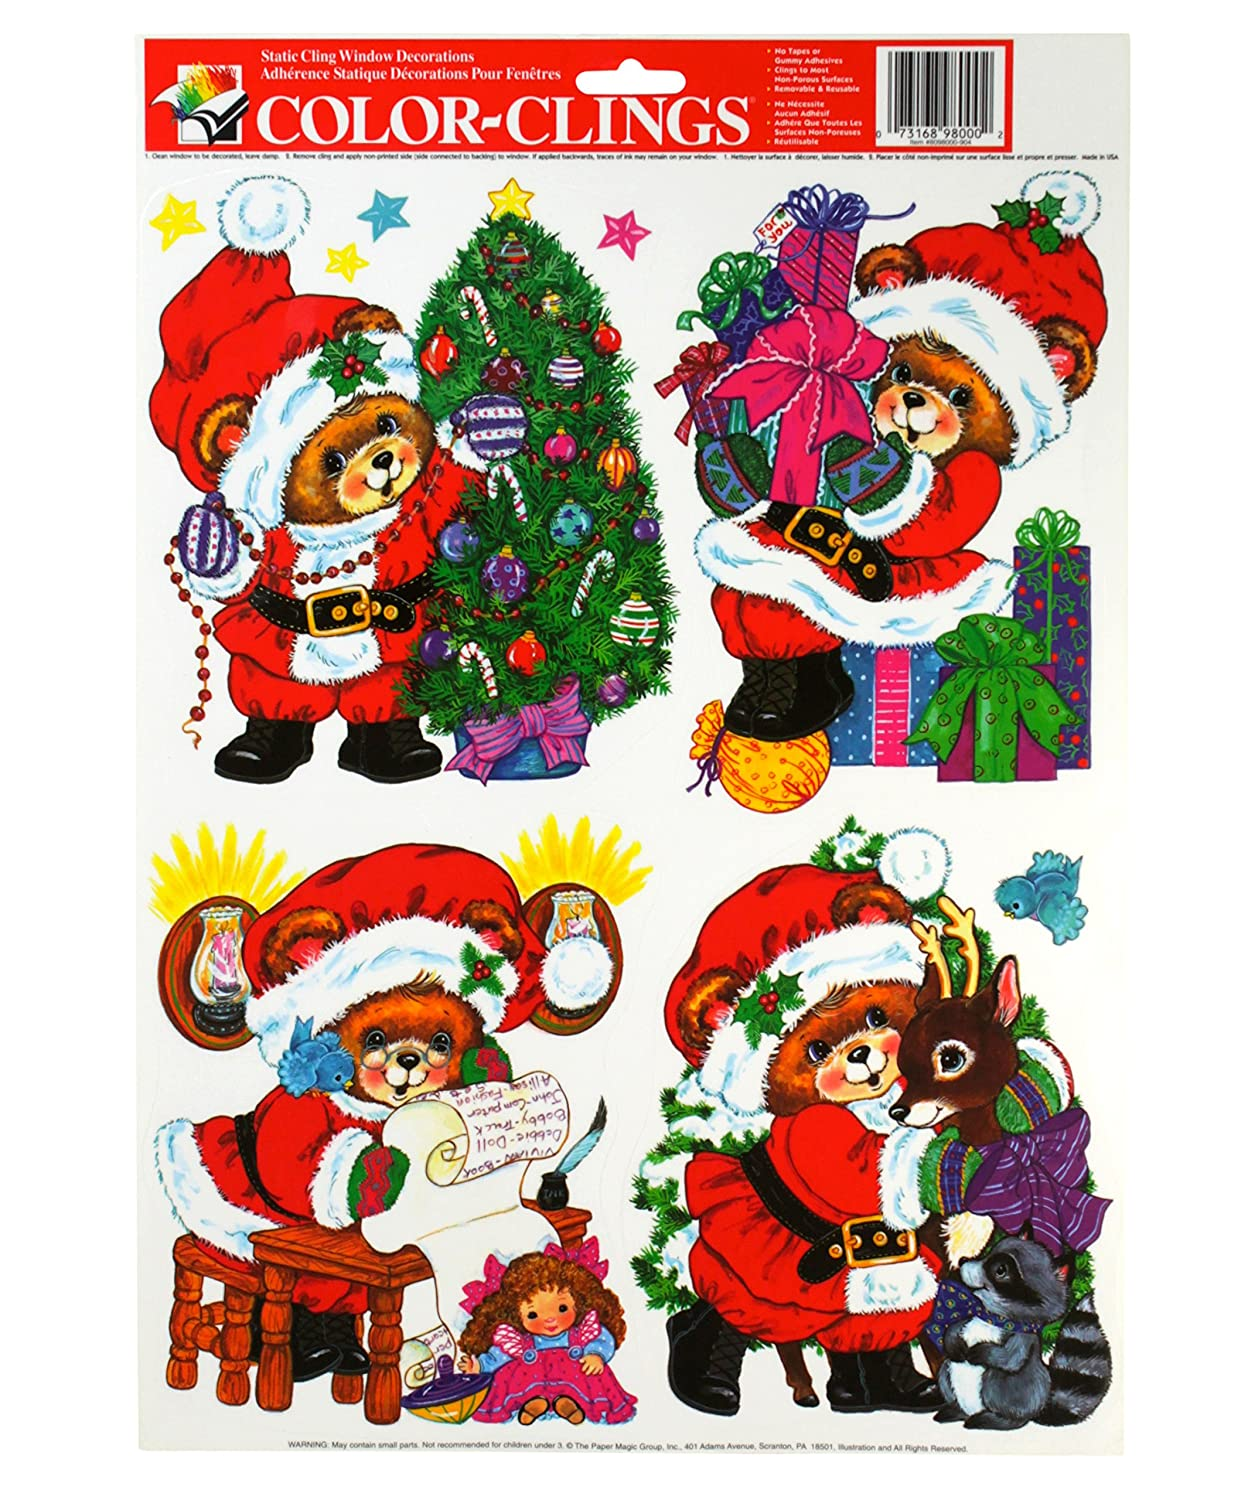 Amazon.com: PAPER MAGIC Static Cling Window Christmas Decorations ...